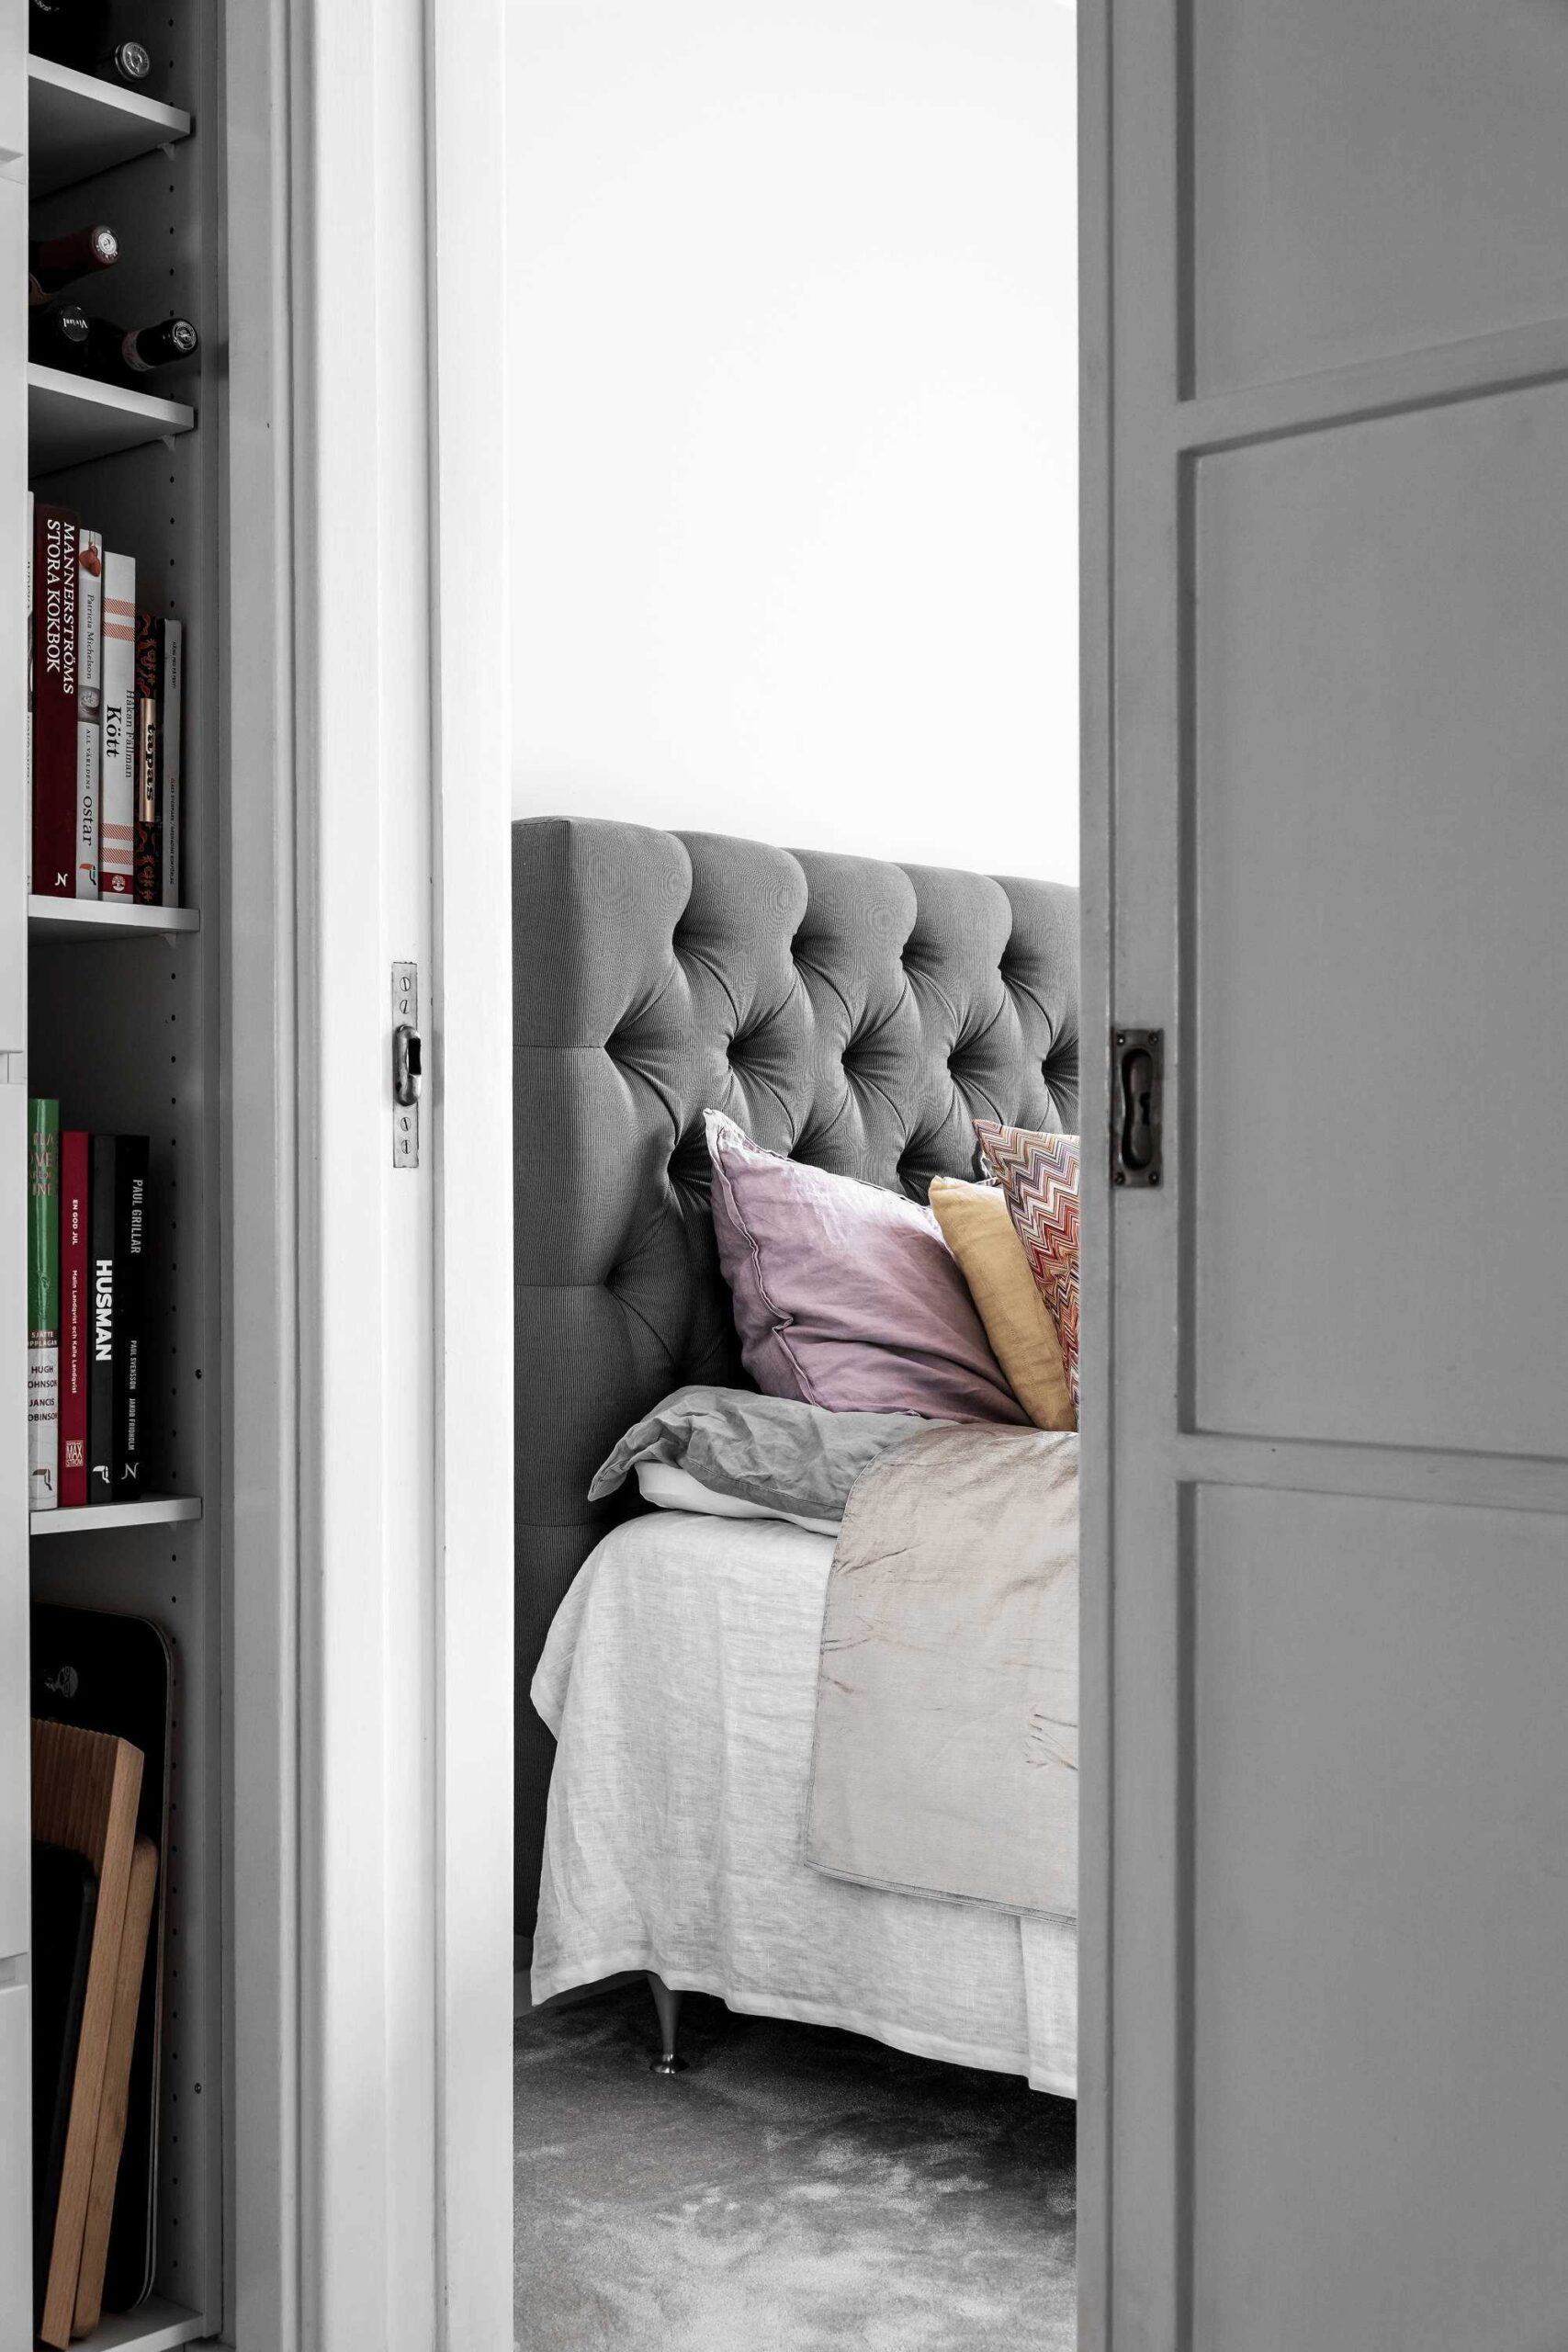 this-is-a-look-at-a-bed-in-a-scandinavian-apartment-with-a-bookshelf-on-the-side-to-show-the-small-initimate-space